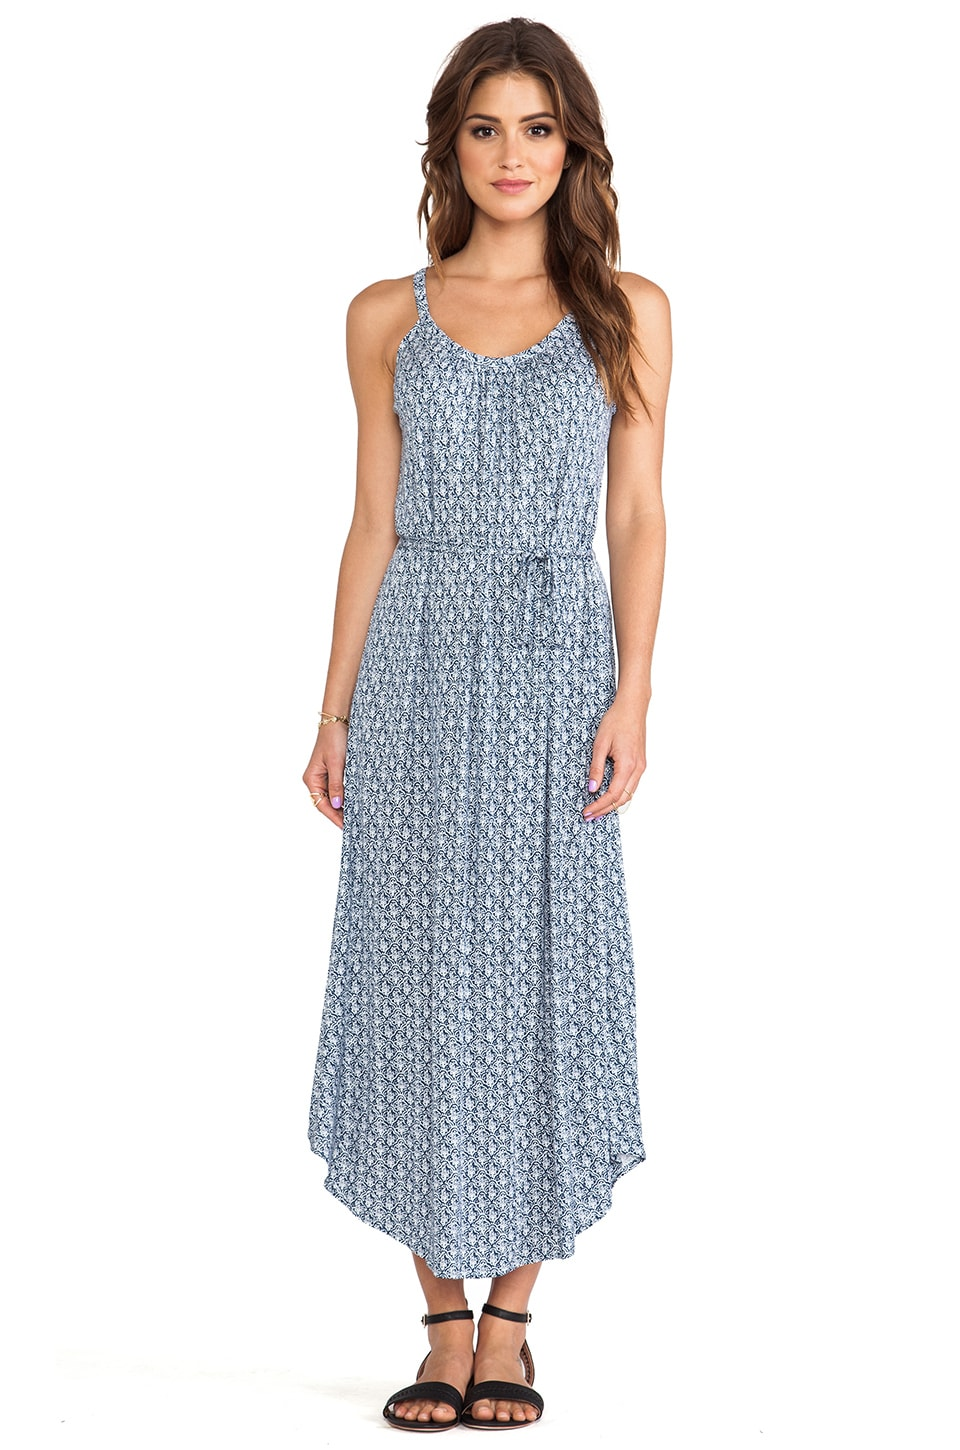 Soft Joie Laguna B Maxi Dress in Dark Denim